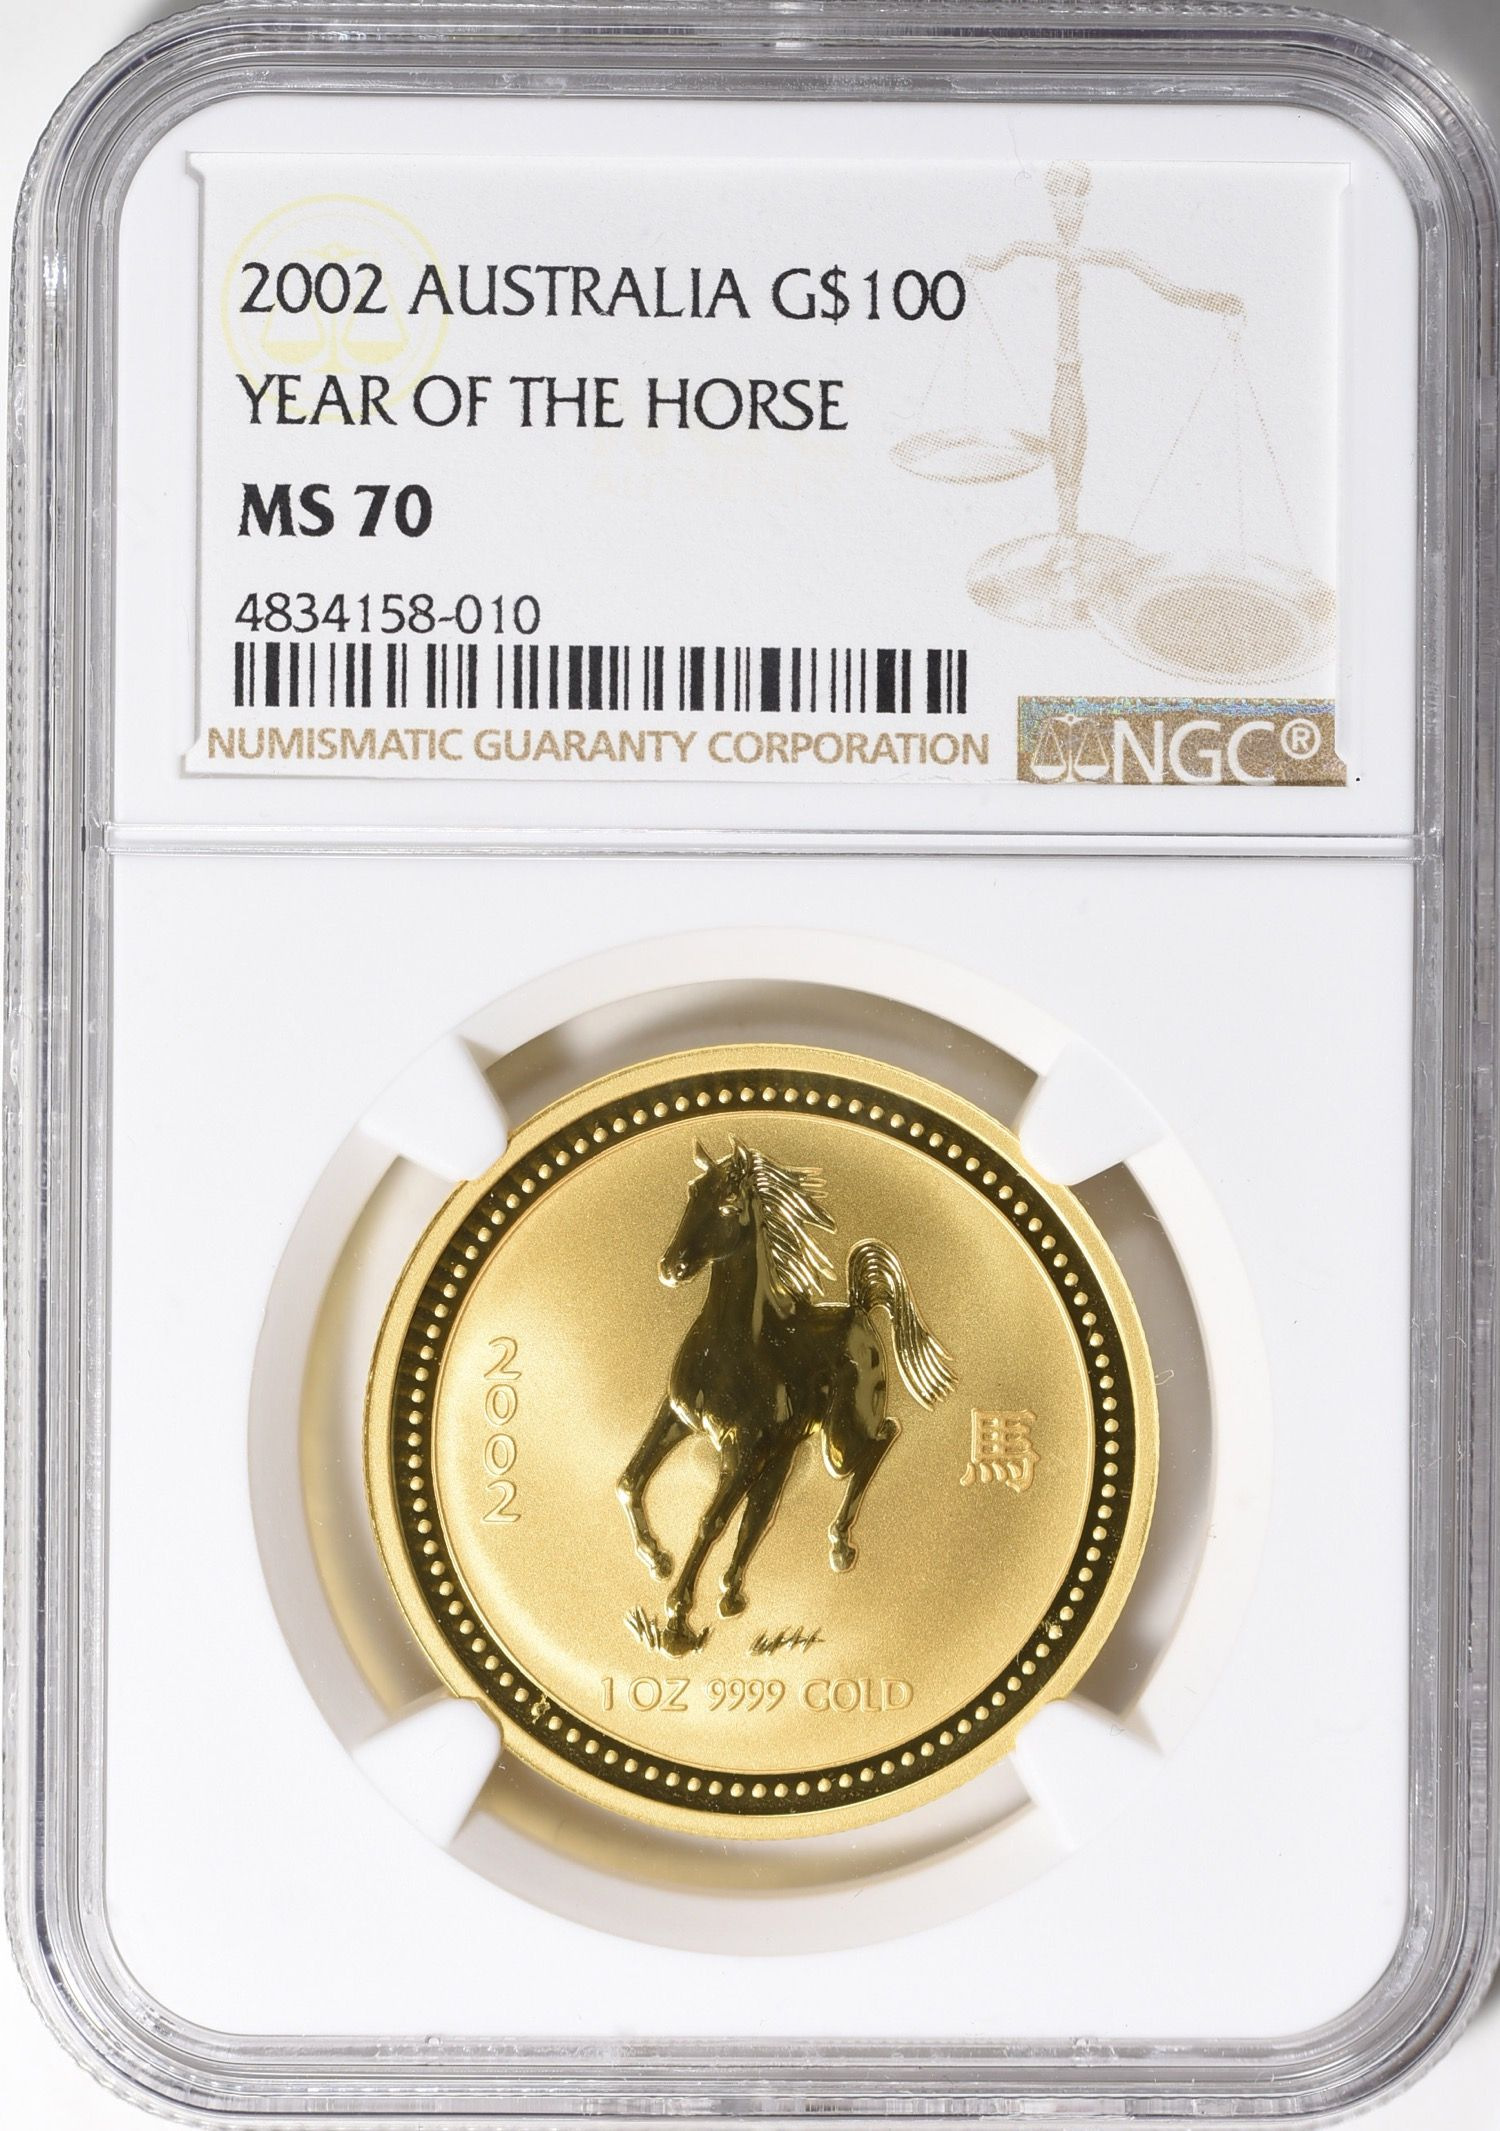 Australia 2002 Gold 100 Lunar Series Year Of The Horse Km 587 Ngc Ms 70 Agw 0 999 Oz Australia 2002 Gold In 2020 Year Of The Horse Coin Auctions World Coins